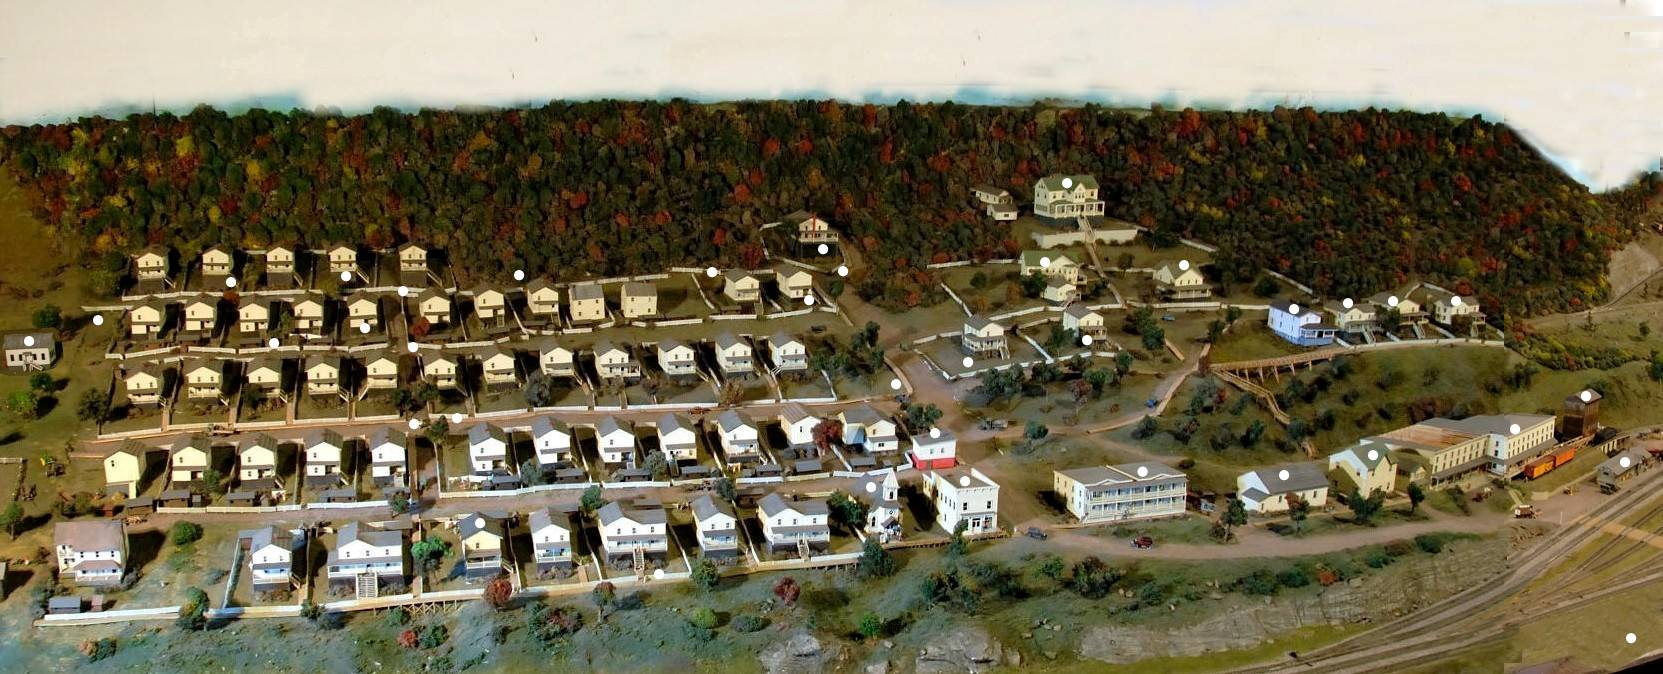 Cass Diorama of what the town used to look like